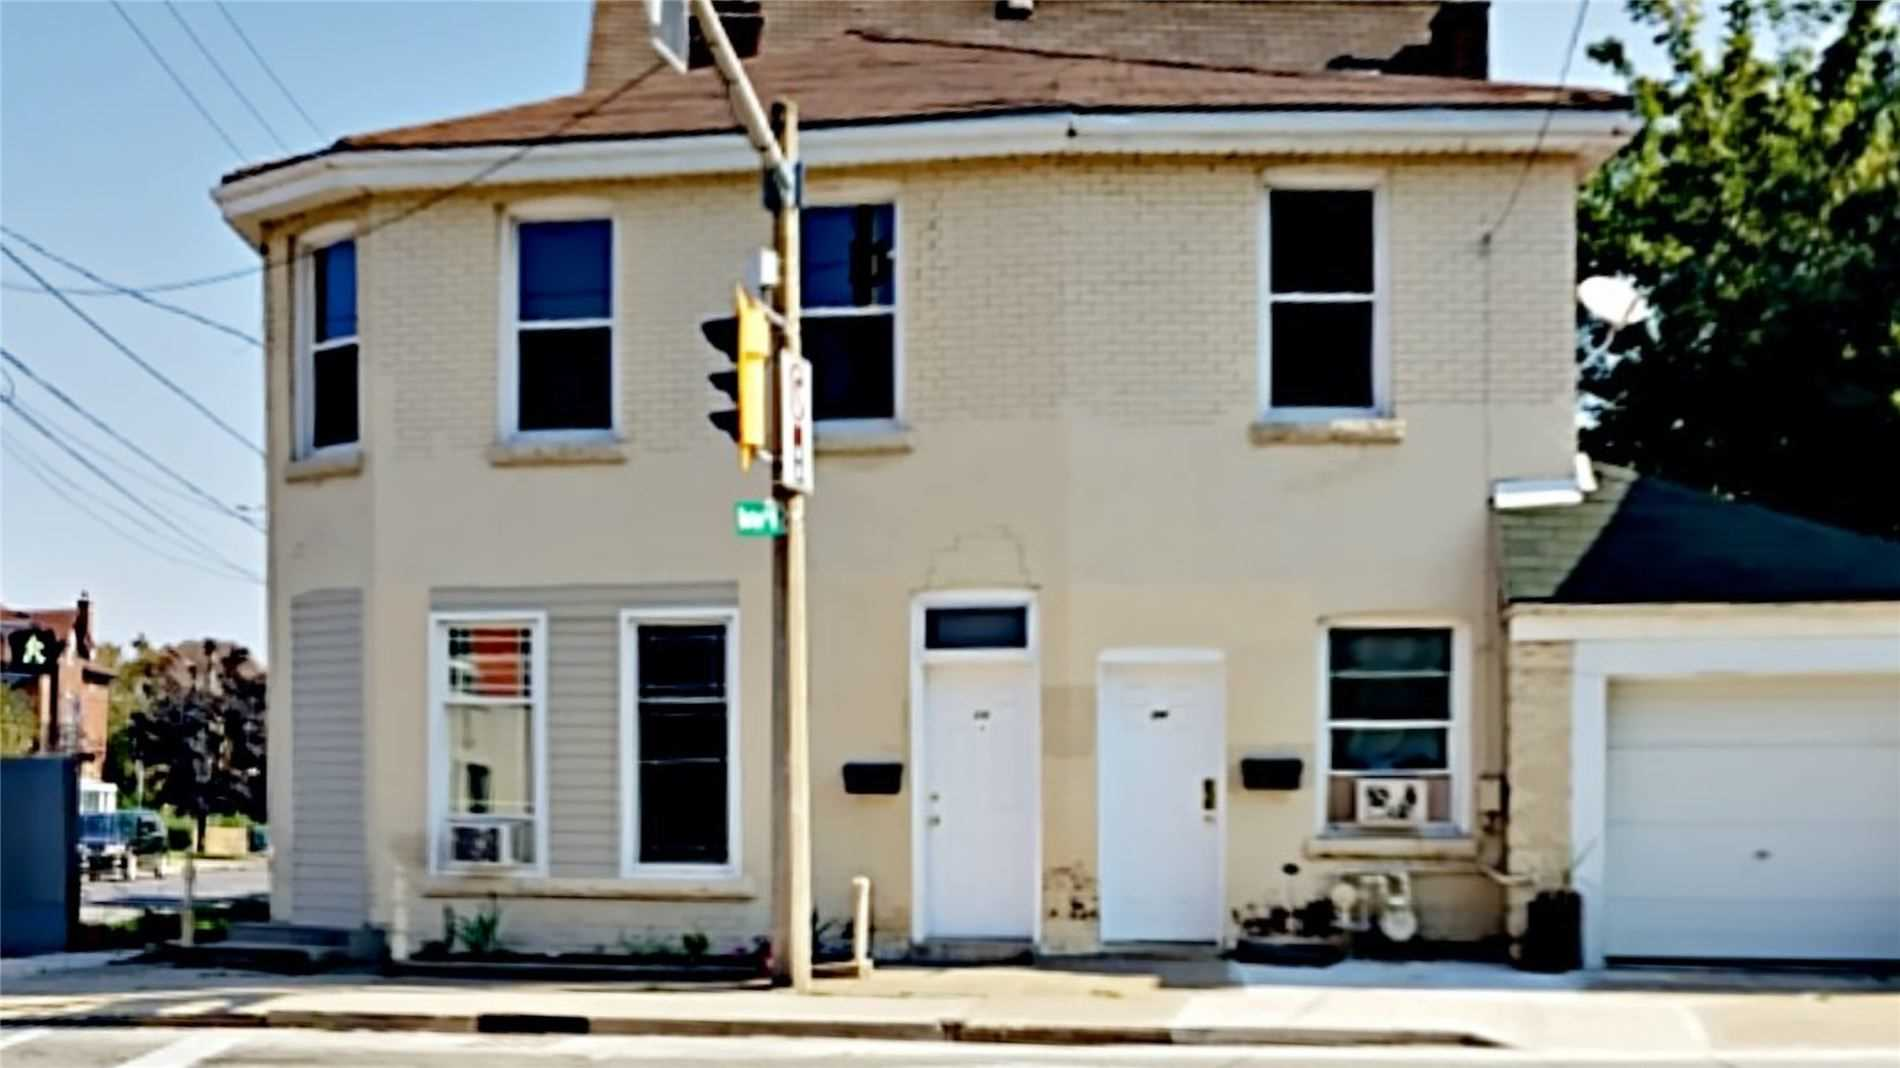 pictures of 236 Bay St N, Hamilton L8R2R2